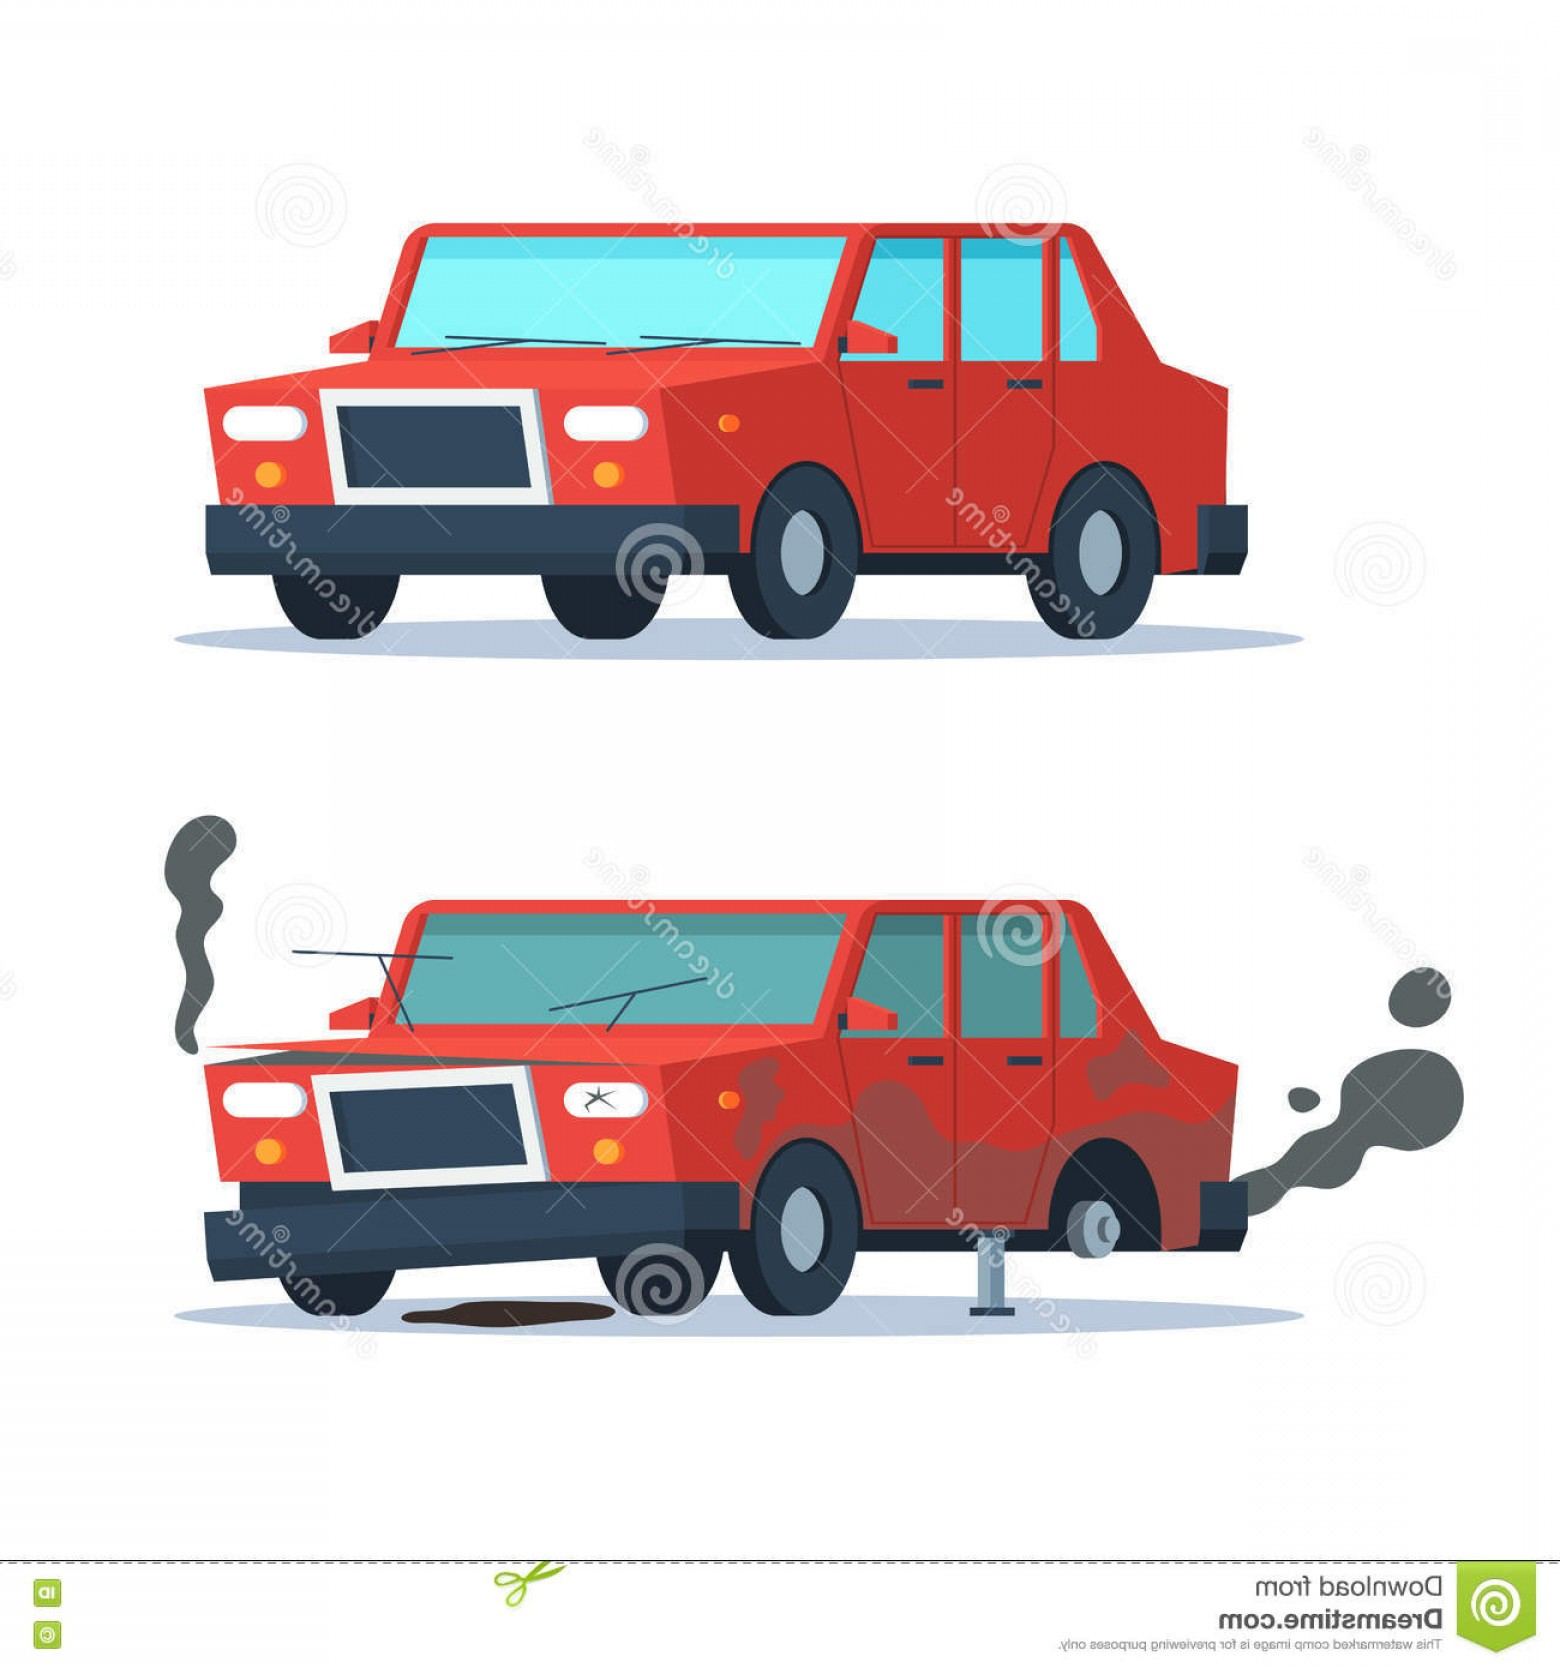 Fixing Car Vector: Stock Illustration Broken Okay Car Sedan Vehicle Crash Road Accident Wrecked Vehicle New Vector Trendy Flat Cartoon Image